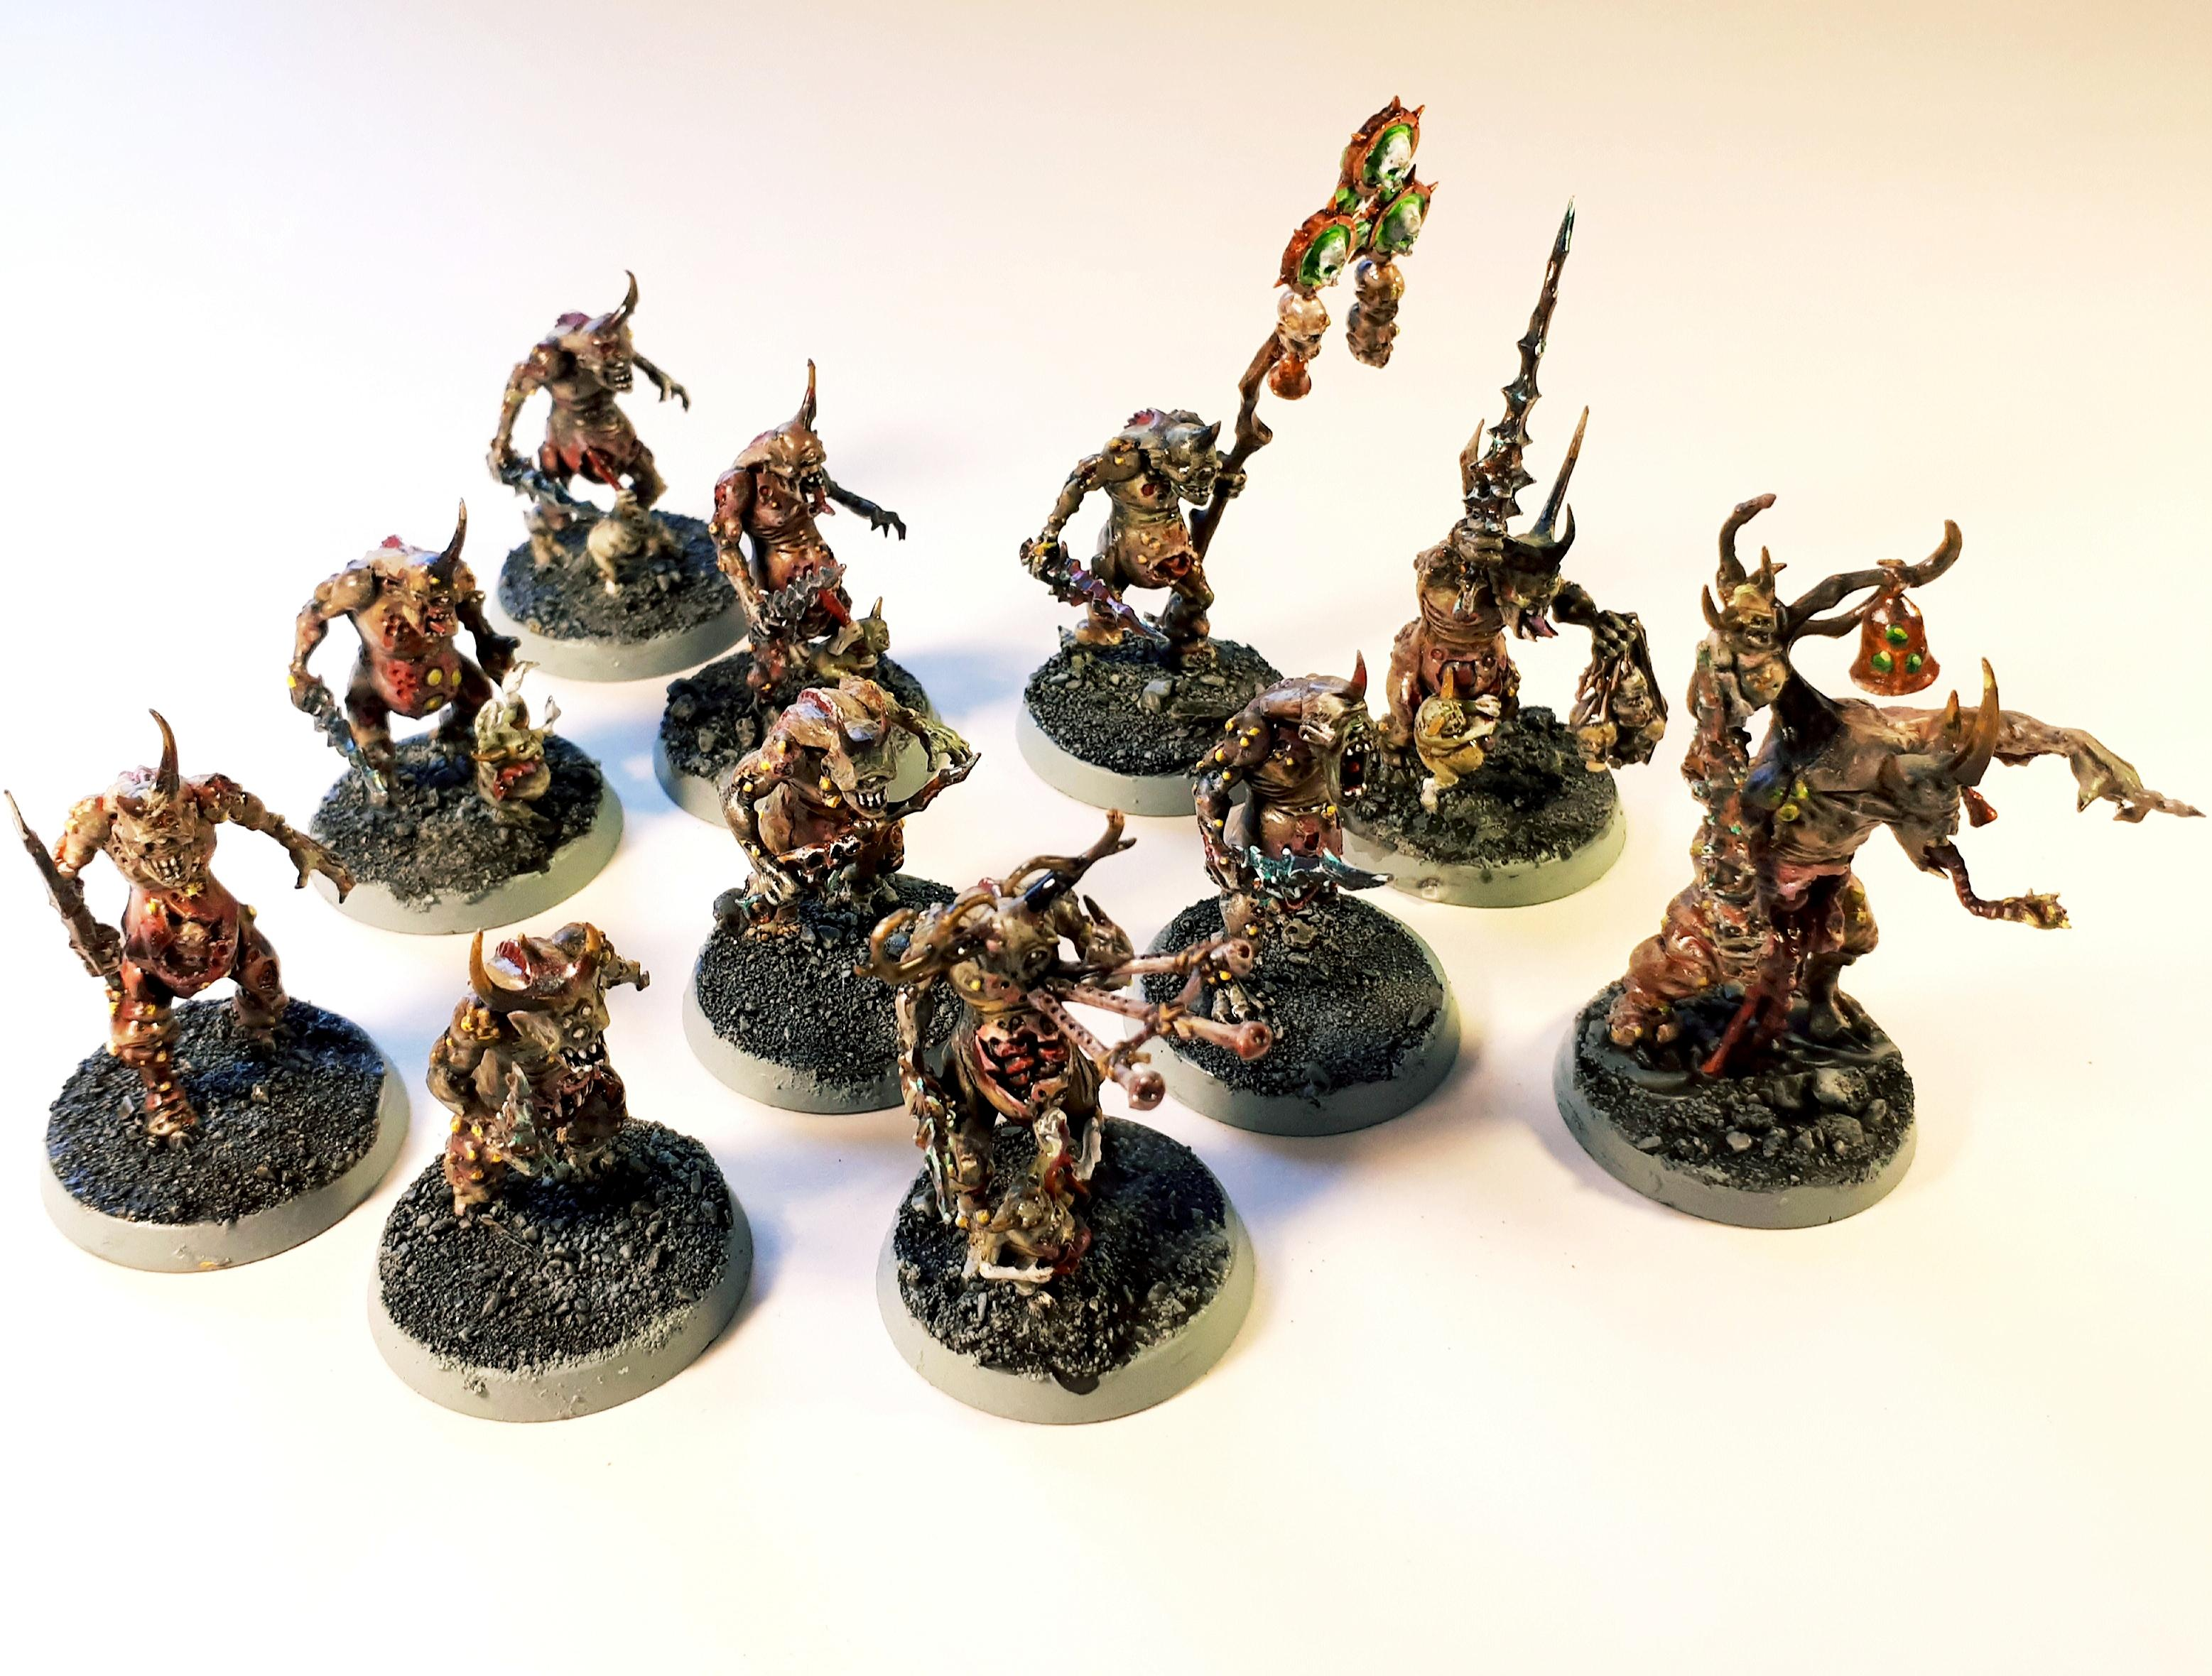 Age Of Sigmar, Daemons Of Chaos, Daemons Of Nurgle, Nurgle, Nurglings, Plague, Plague Drones, Plaguebearers, Play Painted, Warhammer 40,000